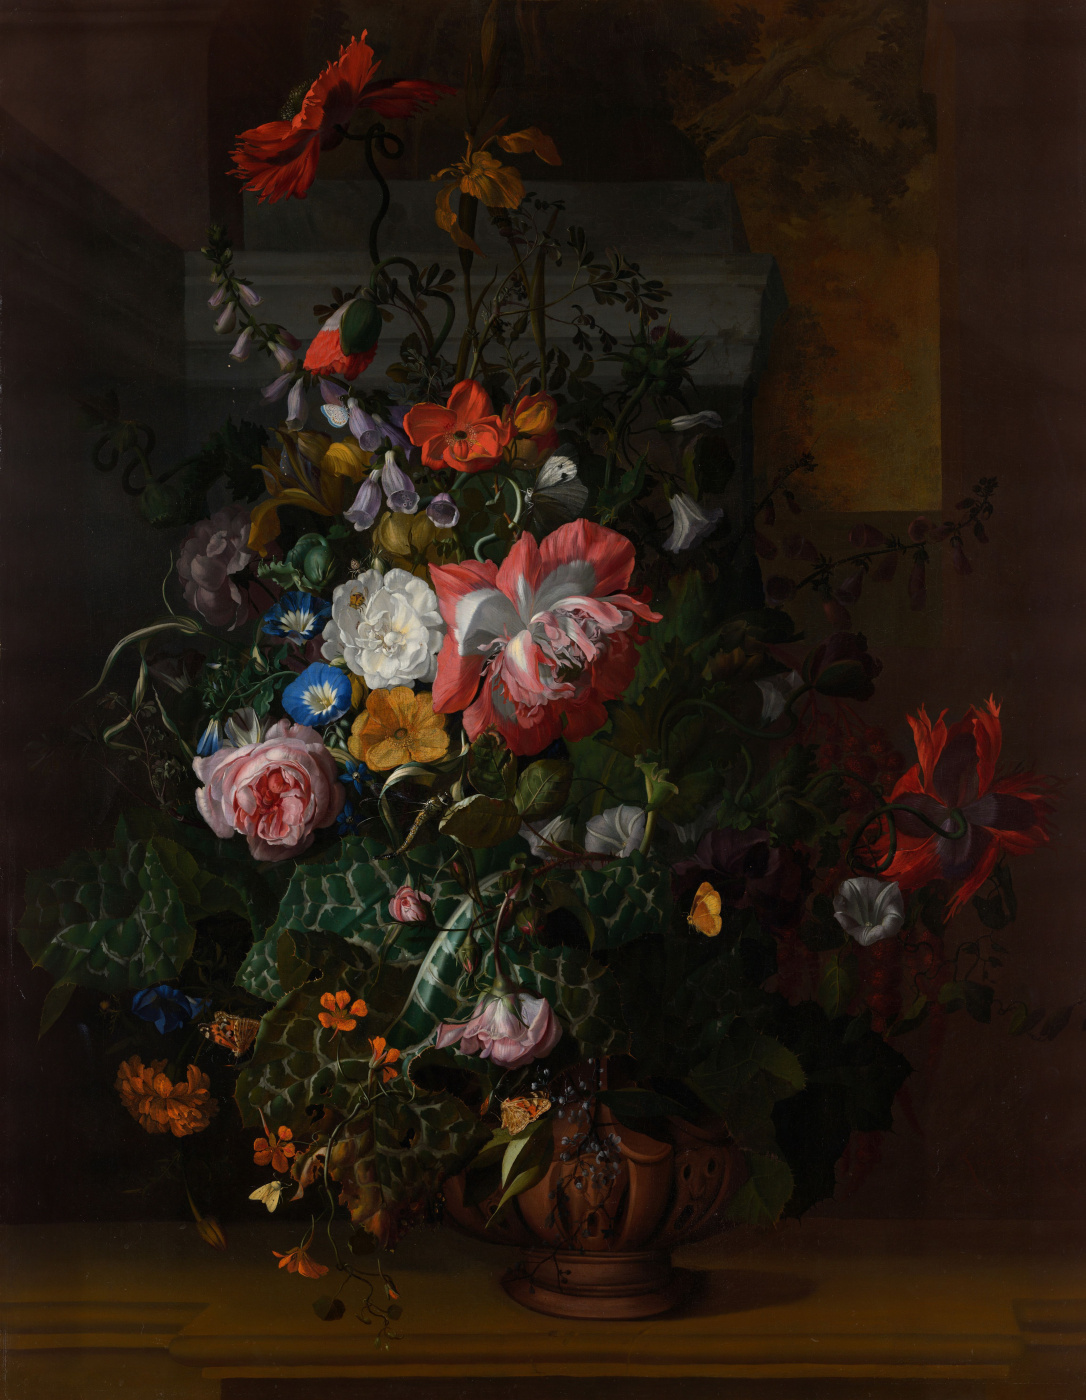 Rachelle Ruysch. Roses convolvulus poppies and other flowers in a vase on a stone shelf